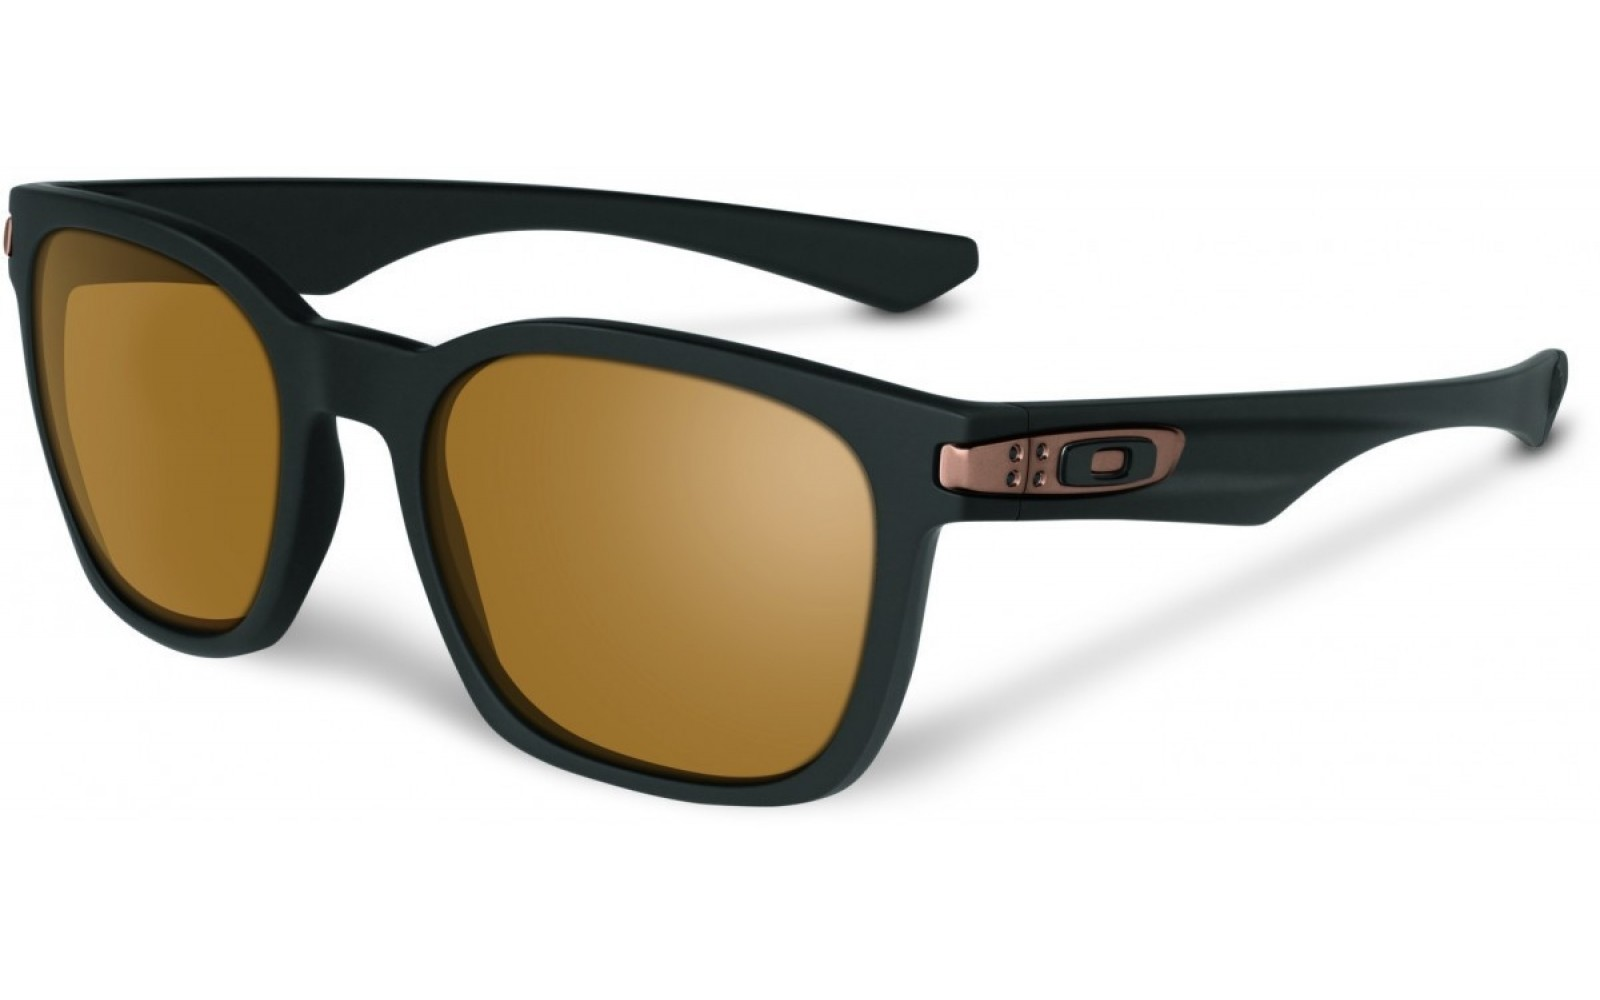 Oakley Garage Rock - Matte Black / Dark Bronze - OO9175-03 Zonnebril